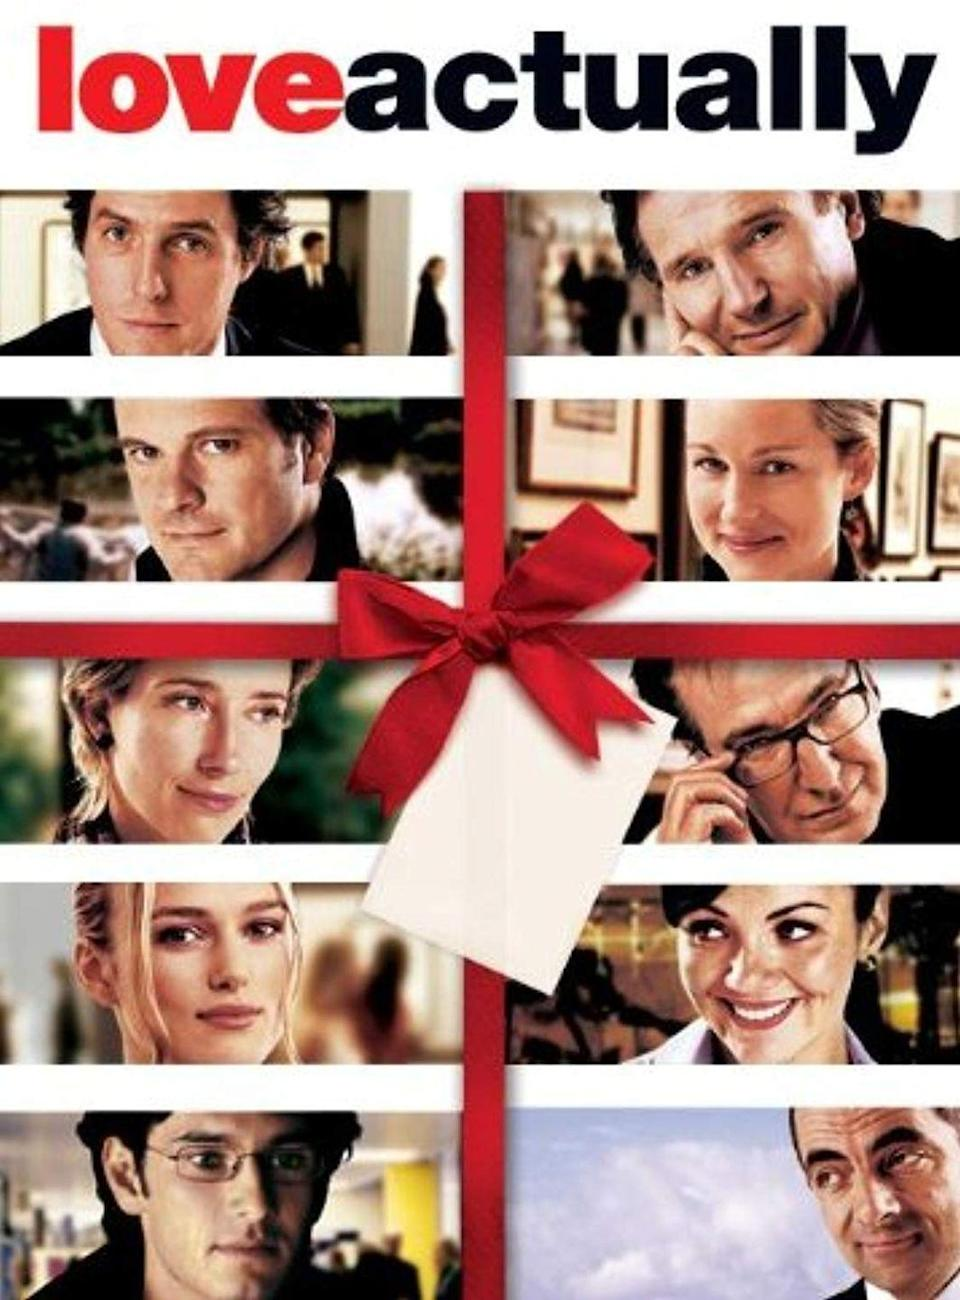 """<p>This 2003 rom-com — which follows the love stories of almost a dozen couples throughout the holiday season — has quickly become part of the classic canon of Christmas movies.</p><p><a class=""""link rapid-noclick-resp"""" href=""""https://www.amazon.com/Love-Actually-Bill-Nighy/dp/B001JIES4Q/?tag=syn-yahoo-20&ascsubtag=%5Bartid%7C10055.g.1315%5Bsrc%7Cyahoo-us"""" rel=""""nofollow noopener"""" target=""""_blank"""" data-ylk=""""slk:WATCH NOW"""">WATCH NOW</a></p><p><strong>RELATED</strong>: <a href=""""https://www.goodhousekeeping.com/holidays/christmas-ideas/g23568017/romantic-christmas-movies/"""" rel=""""nofollow noopener"""" target=""""_blank"""" data-ylk=""""slk:The 25+ Most Romantic Christmas Movies of All Time"""" class=""""link rapid-noclick-resp"""">The 25+ Most Romantic Christmas Movies of All Time</a></p>"""